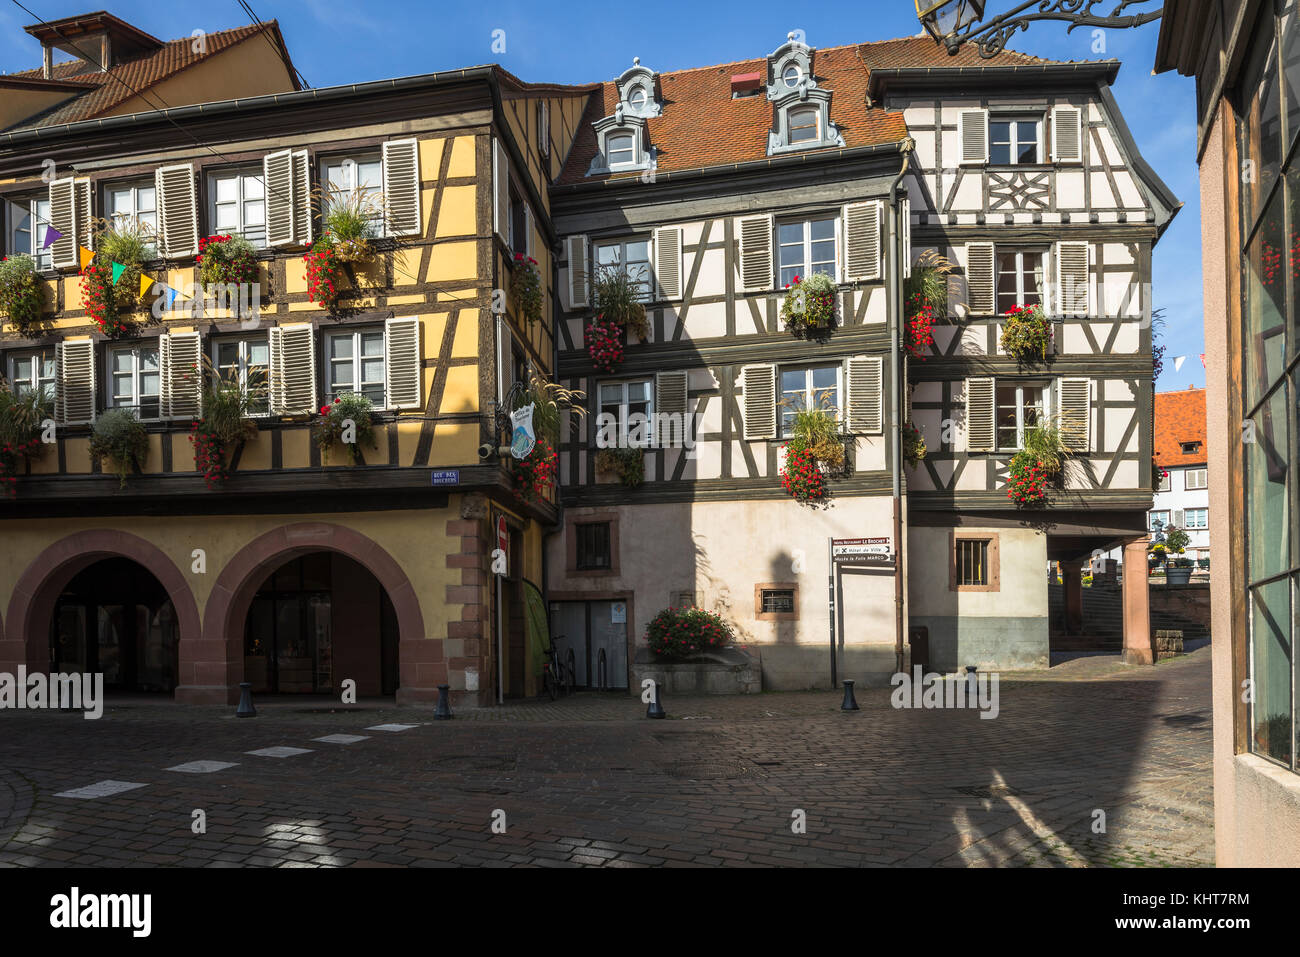 old skew-whiff half-timbered houses in the village Barr, on the Wine Route of Alsace, France - Stock Image